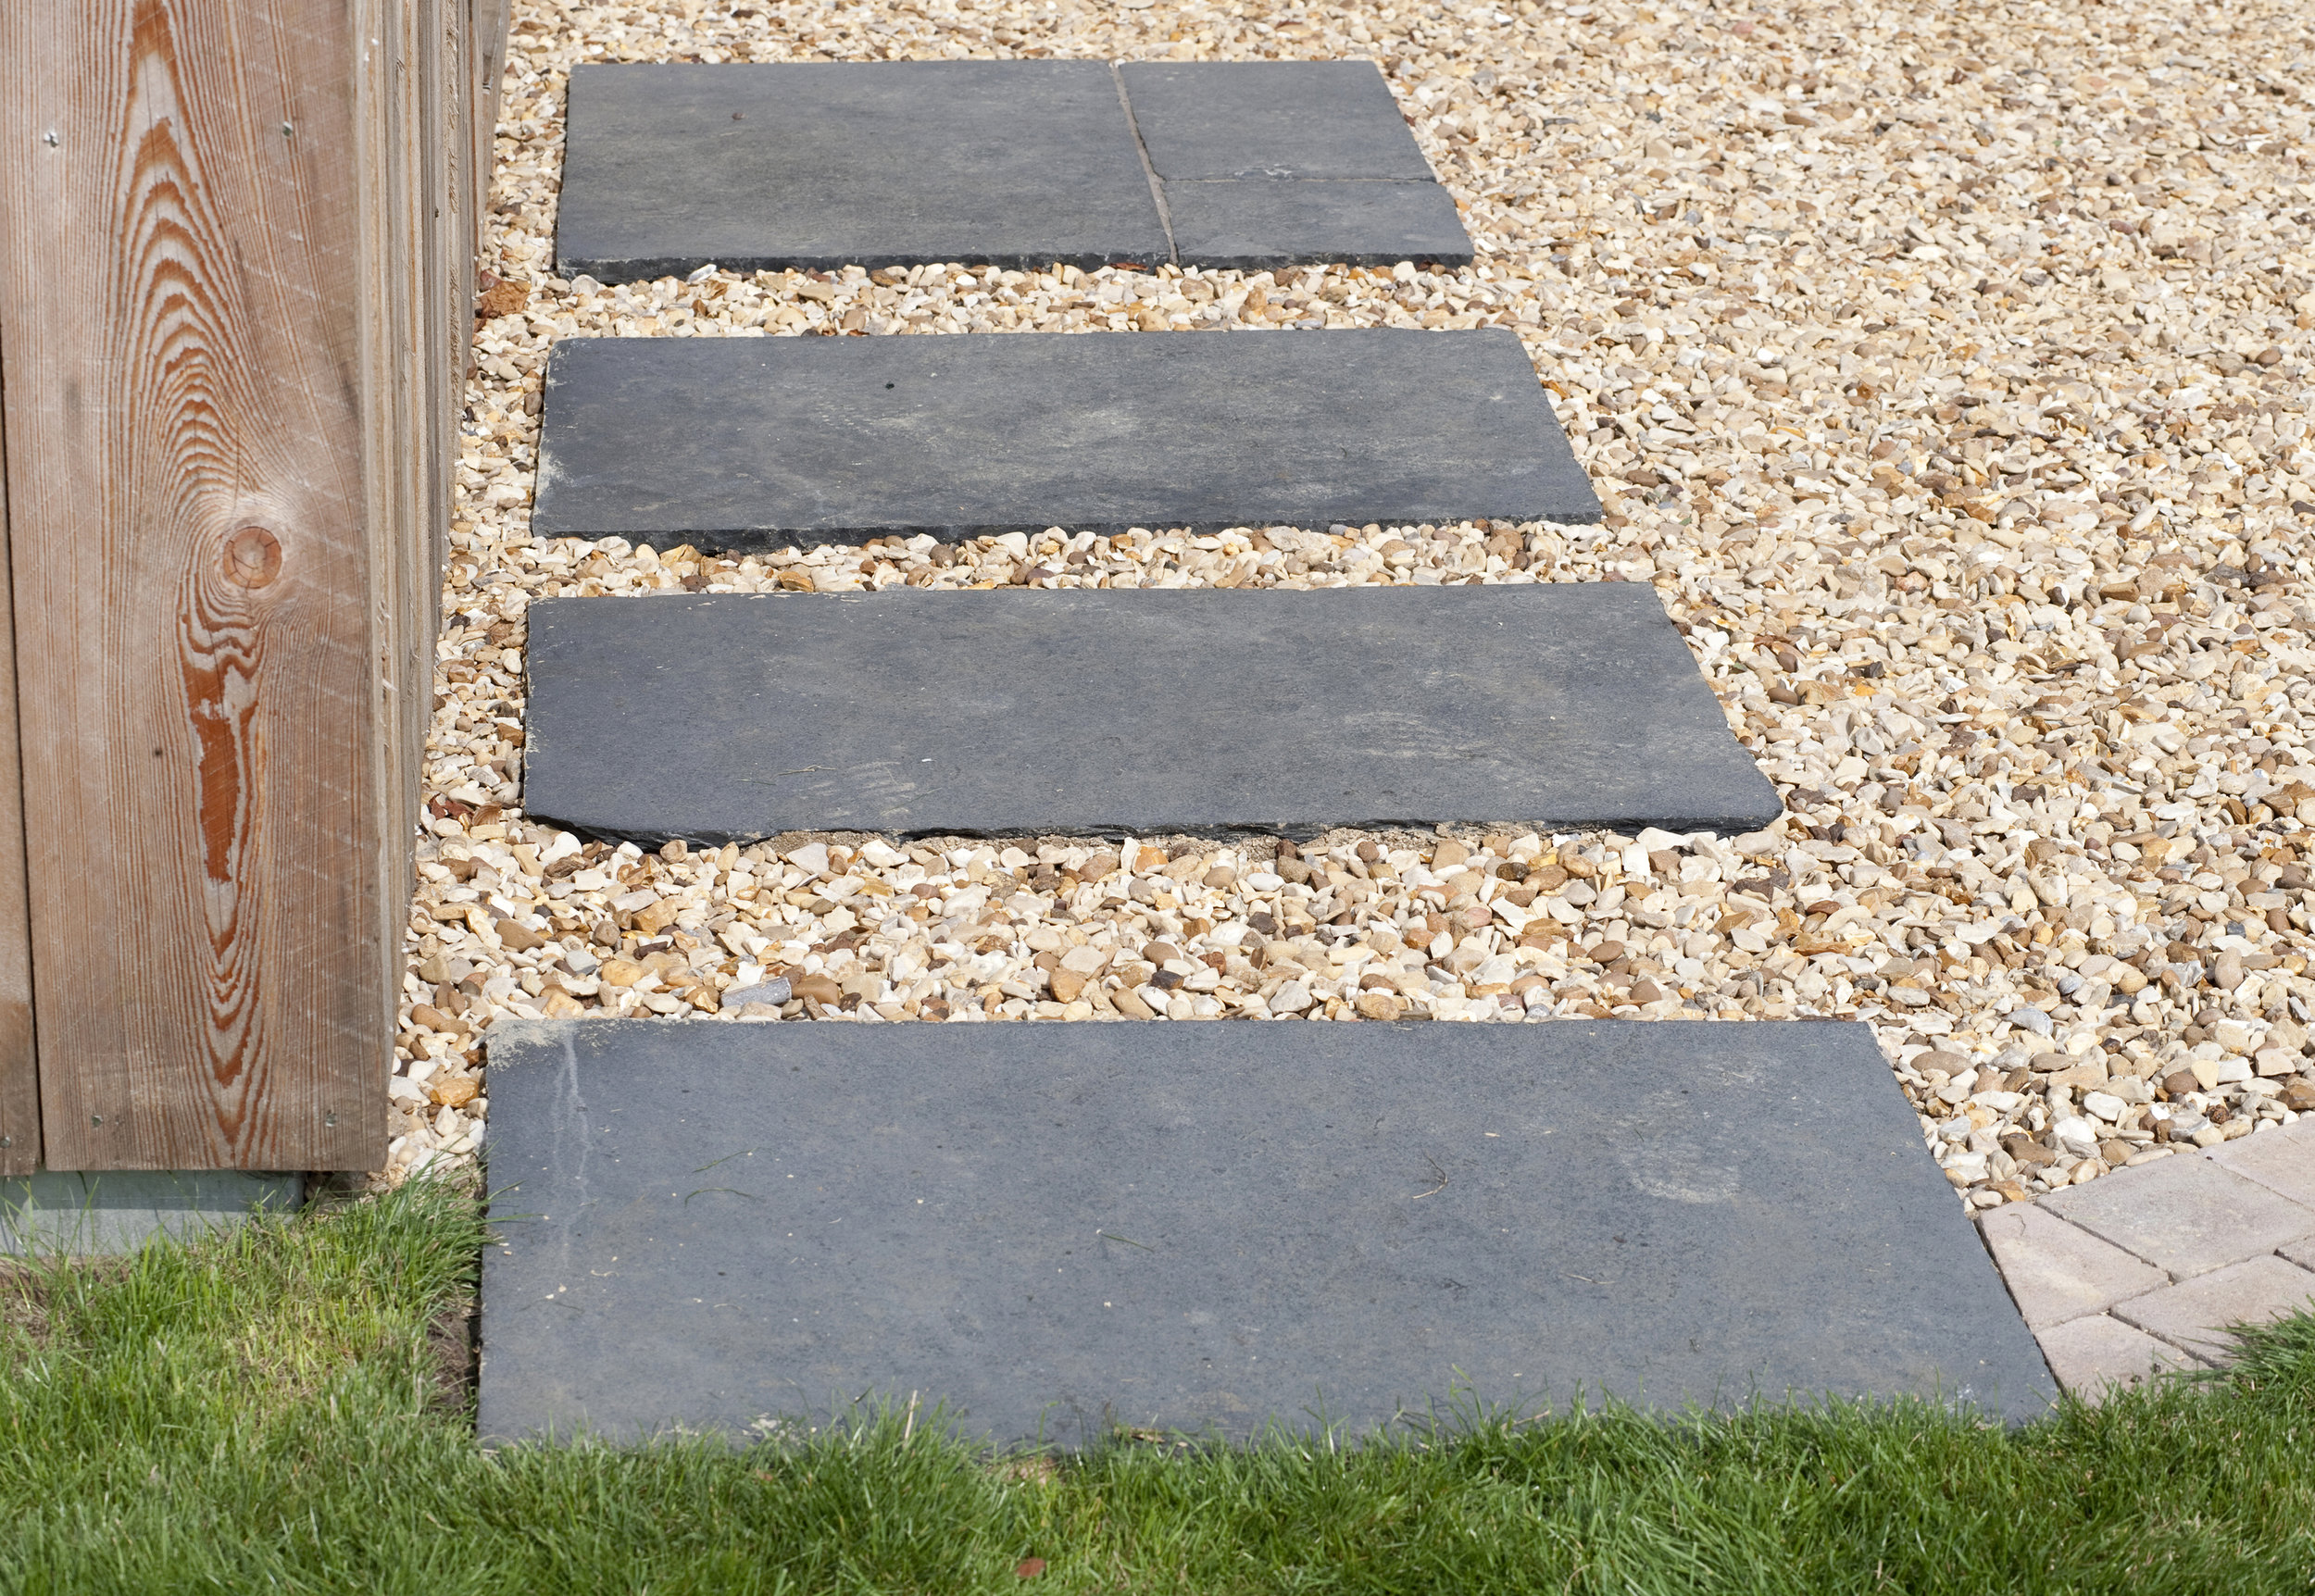 Stepping stones made of Indian slate are a stunning way to create contrasting colour and texture for Nicola's garden walkway.